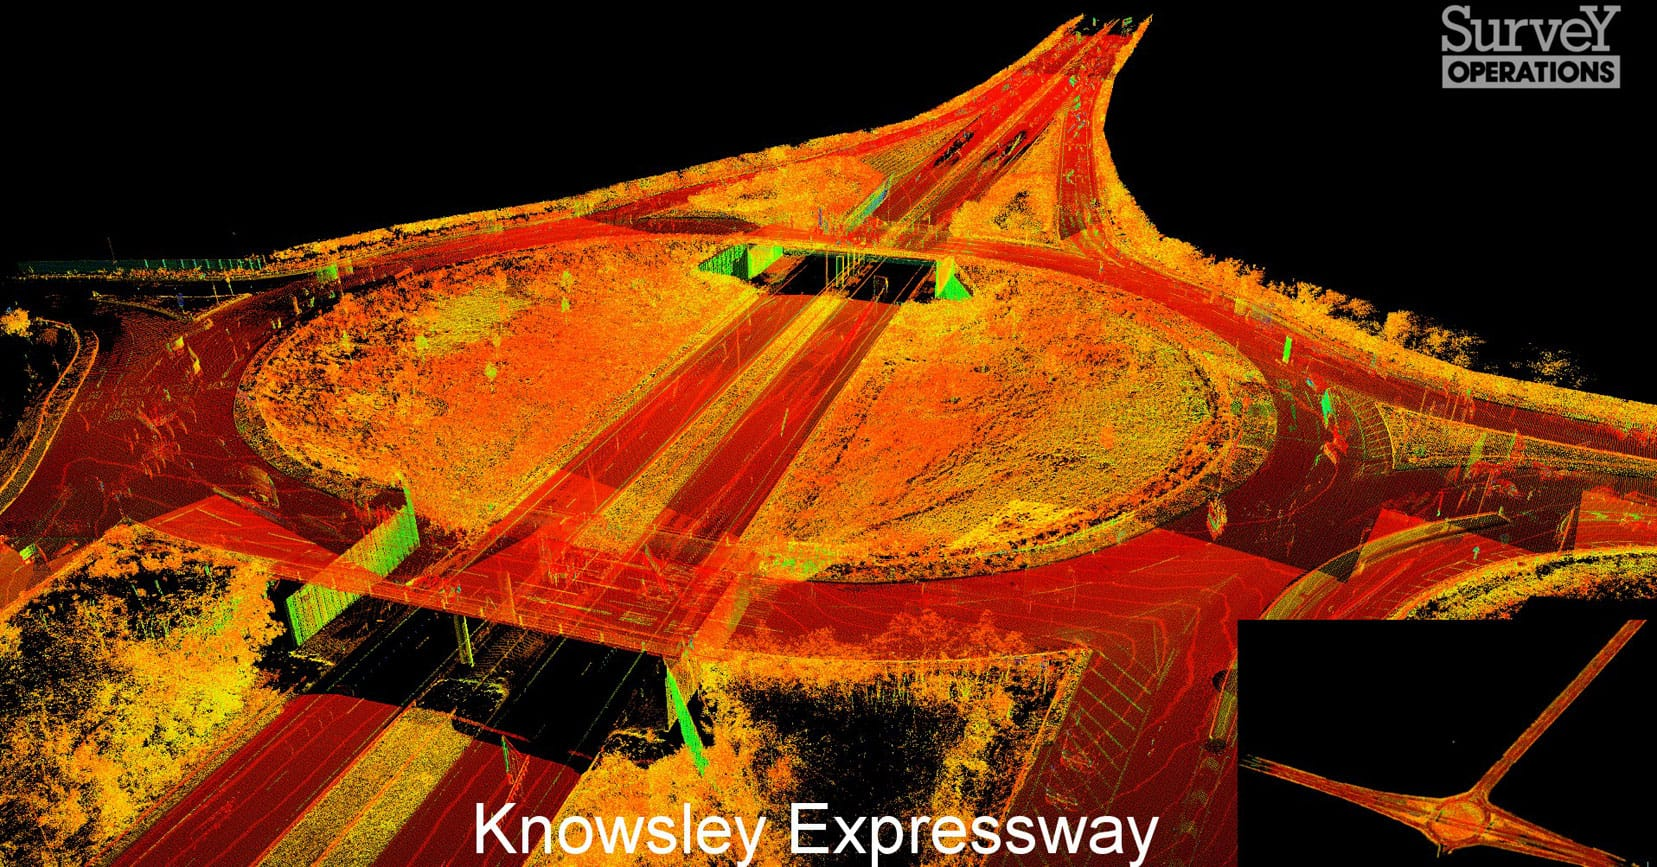 Survey Operations mobile mapping of hte Knowsley Expressway.